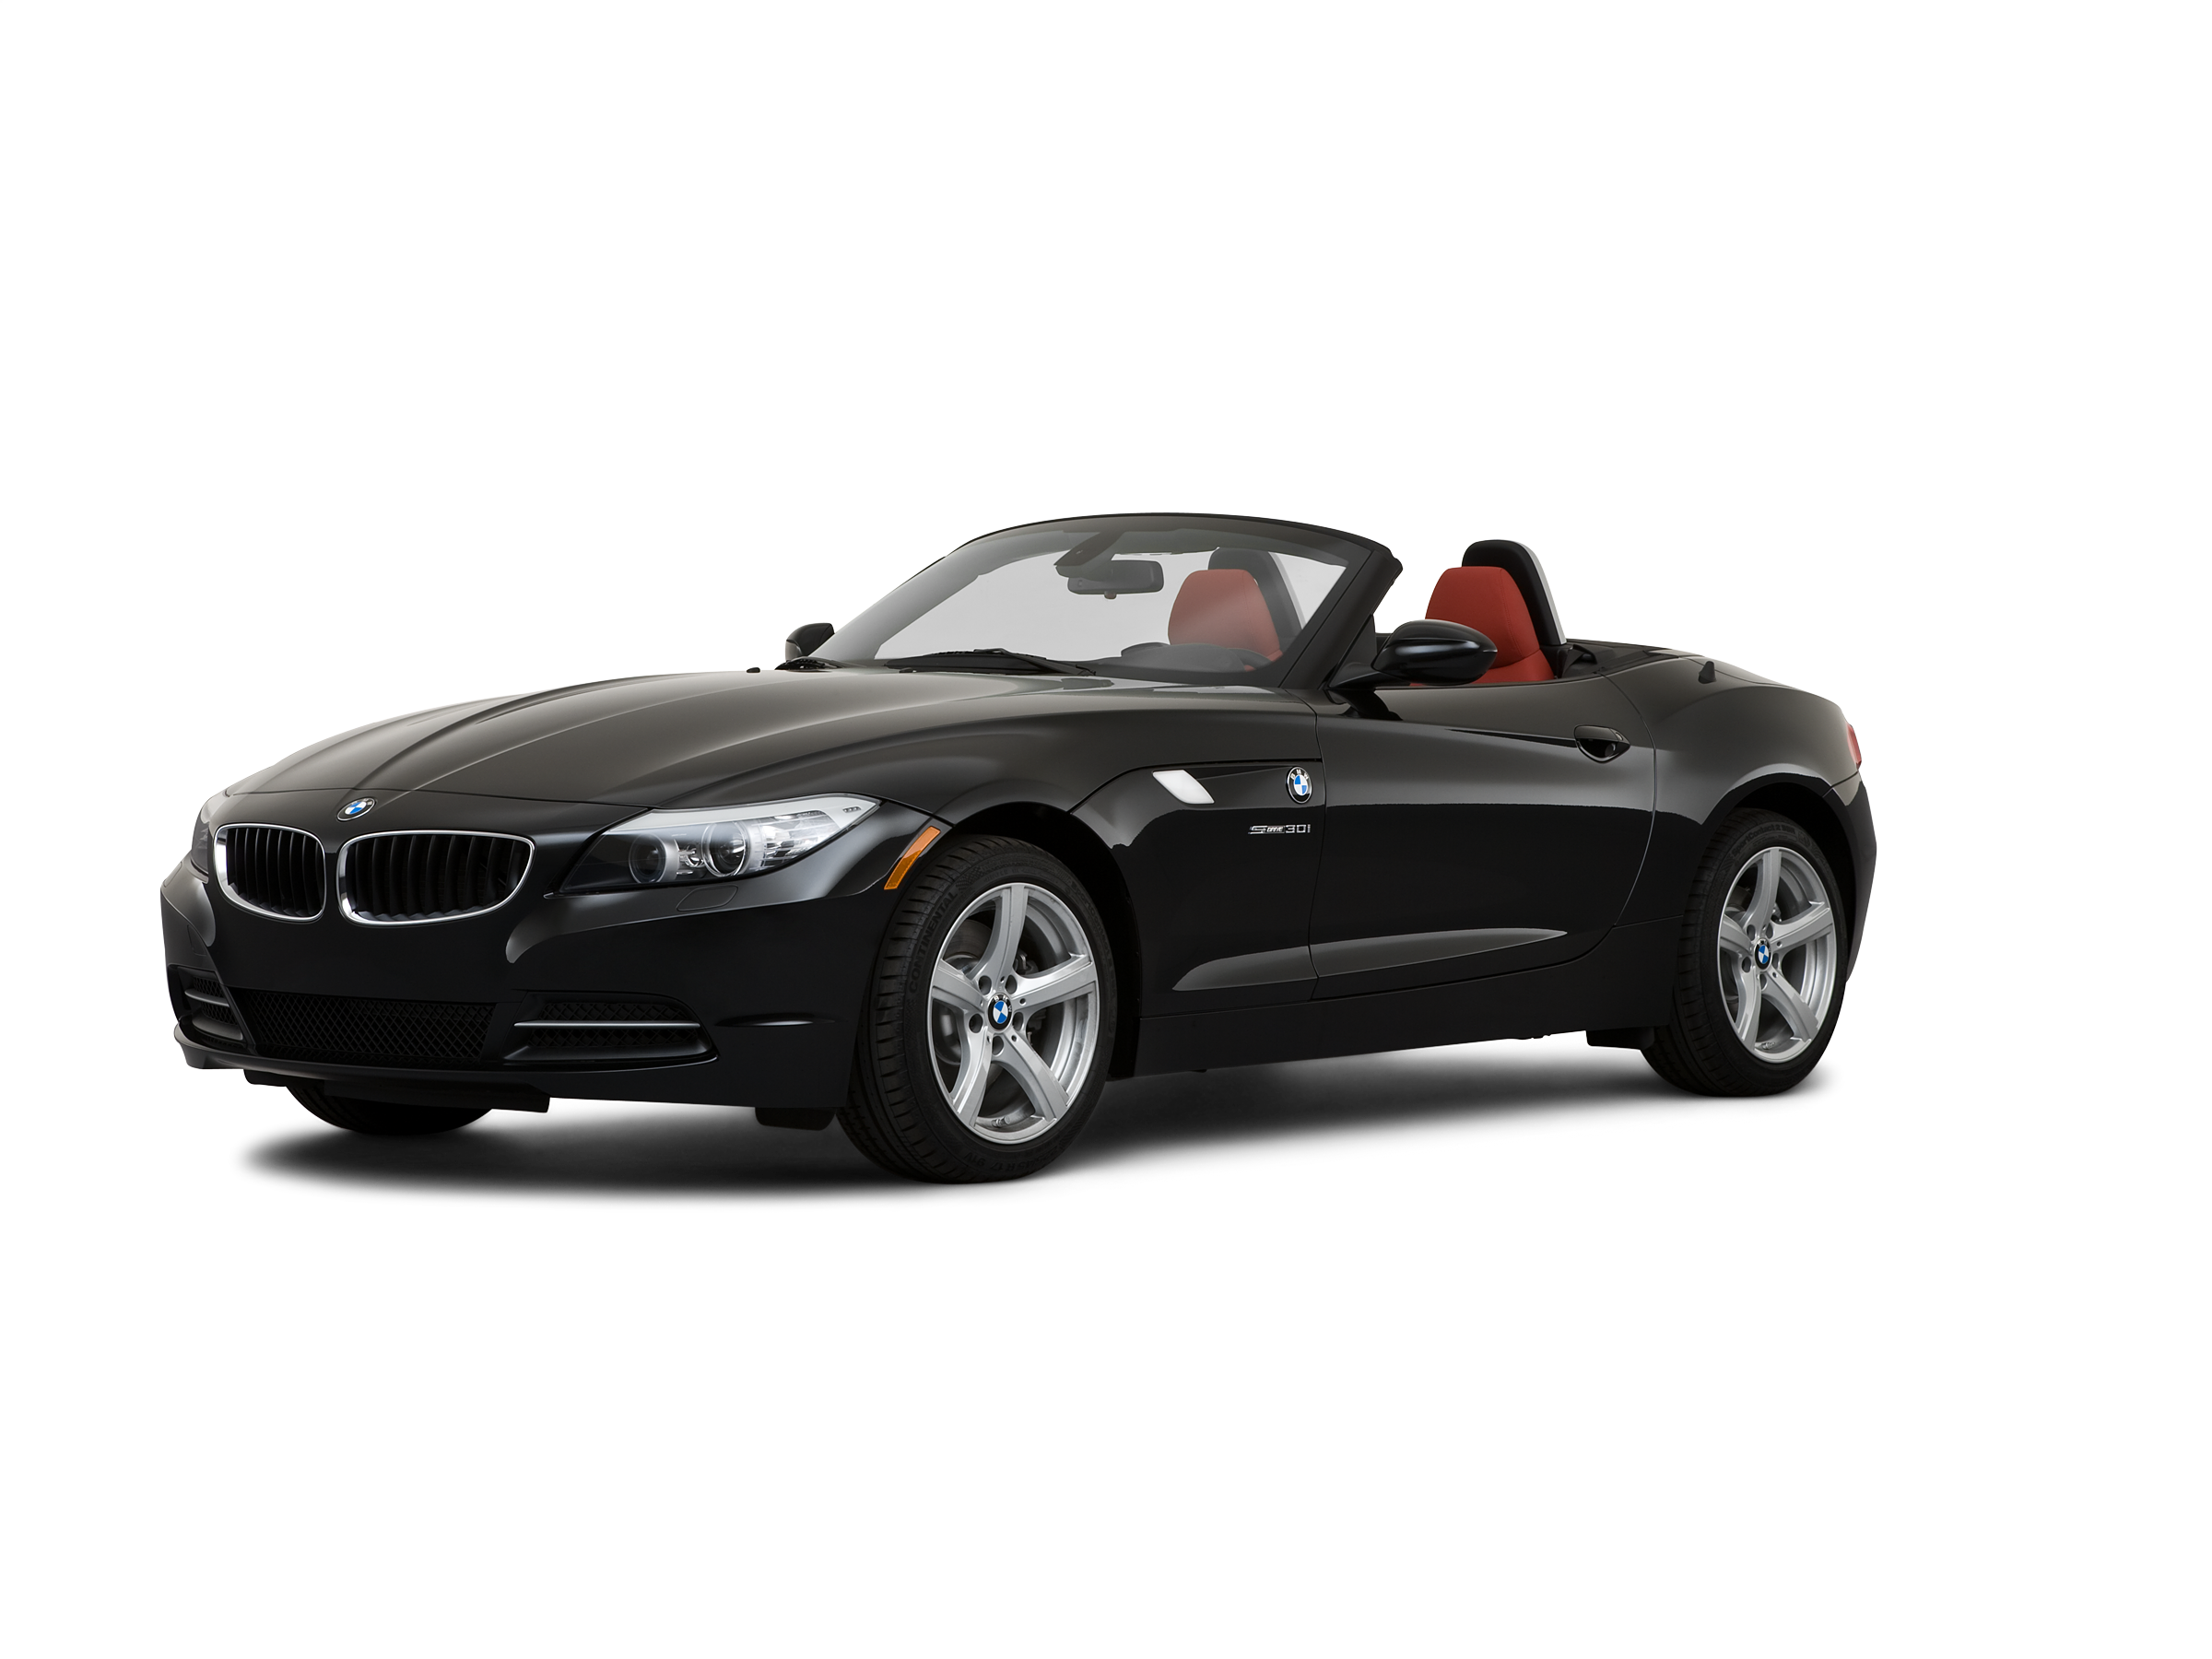 2009 Bmw Z4 Values Cars For Sale Kelley Blue Book